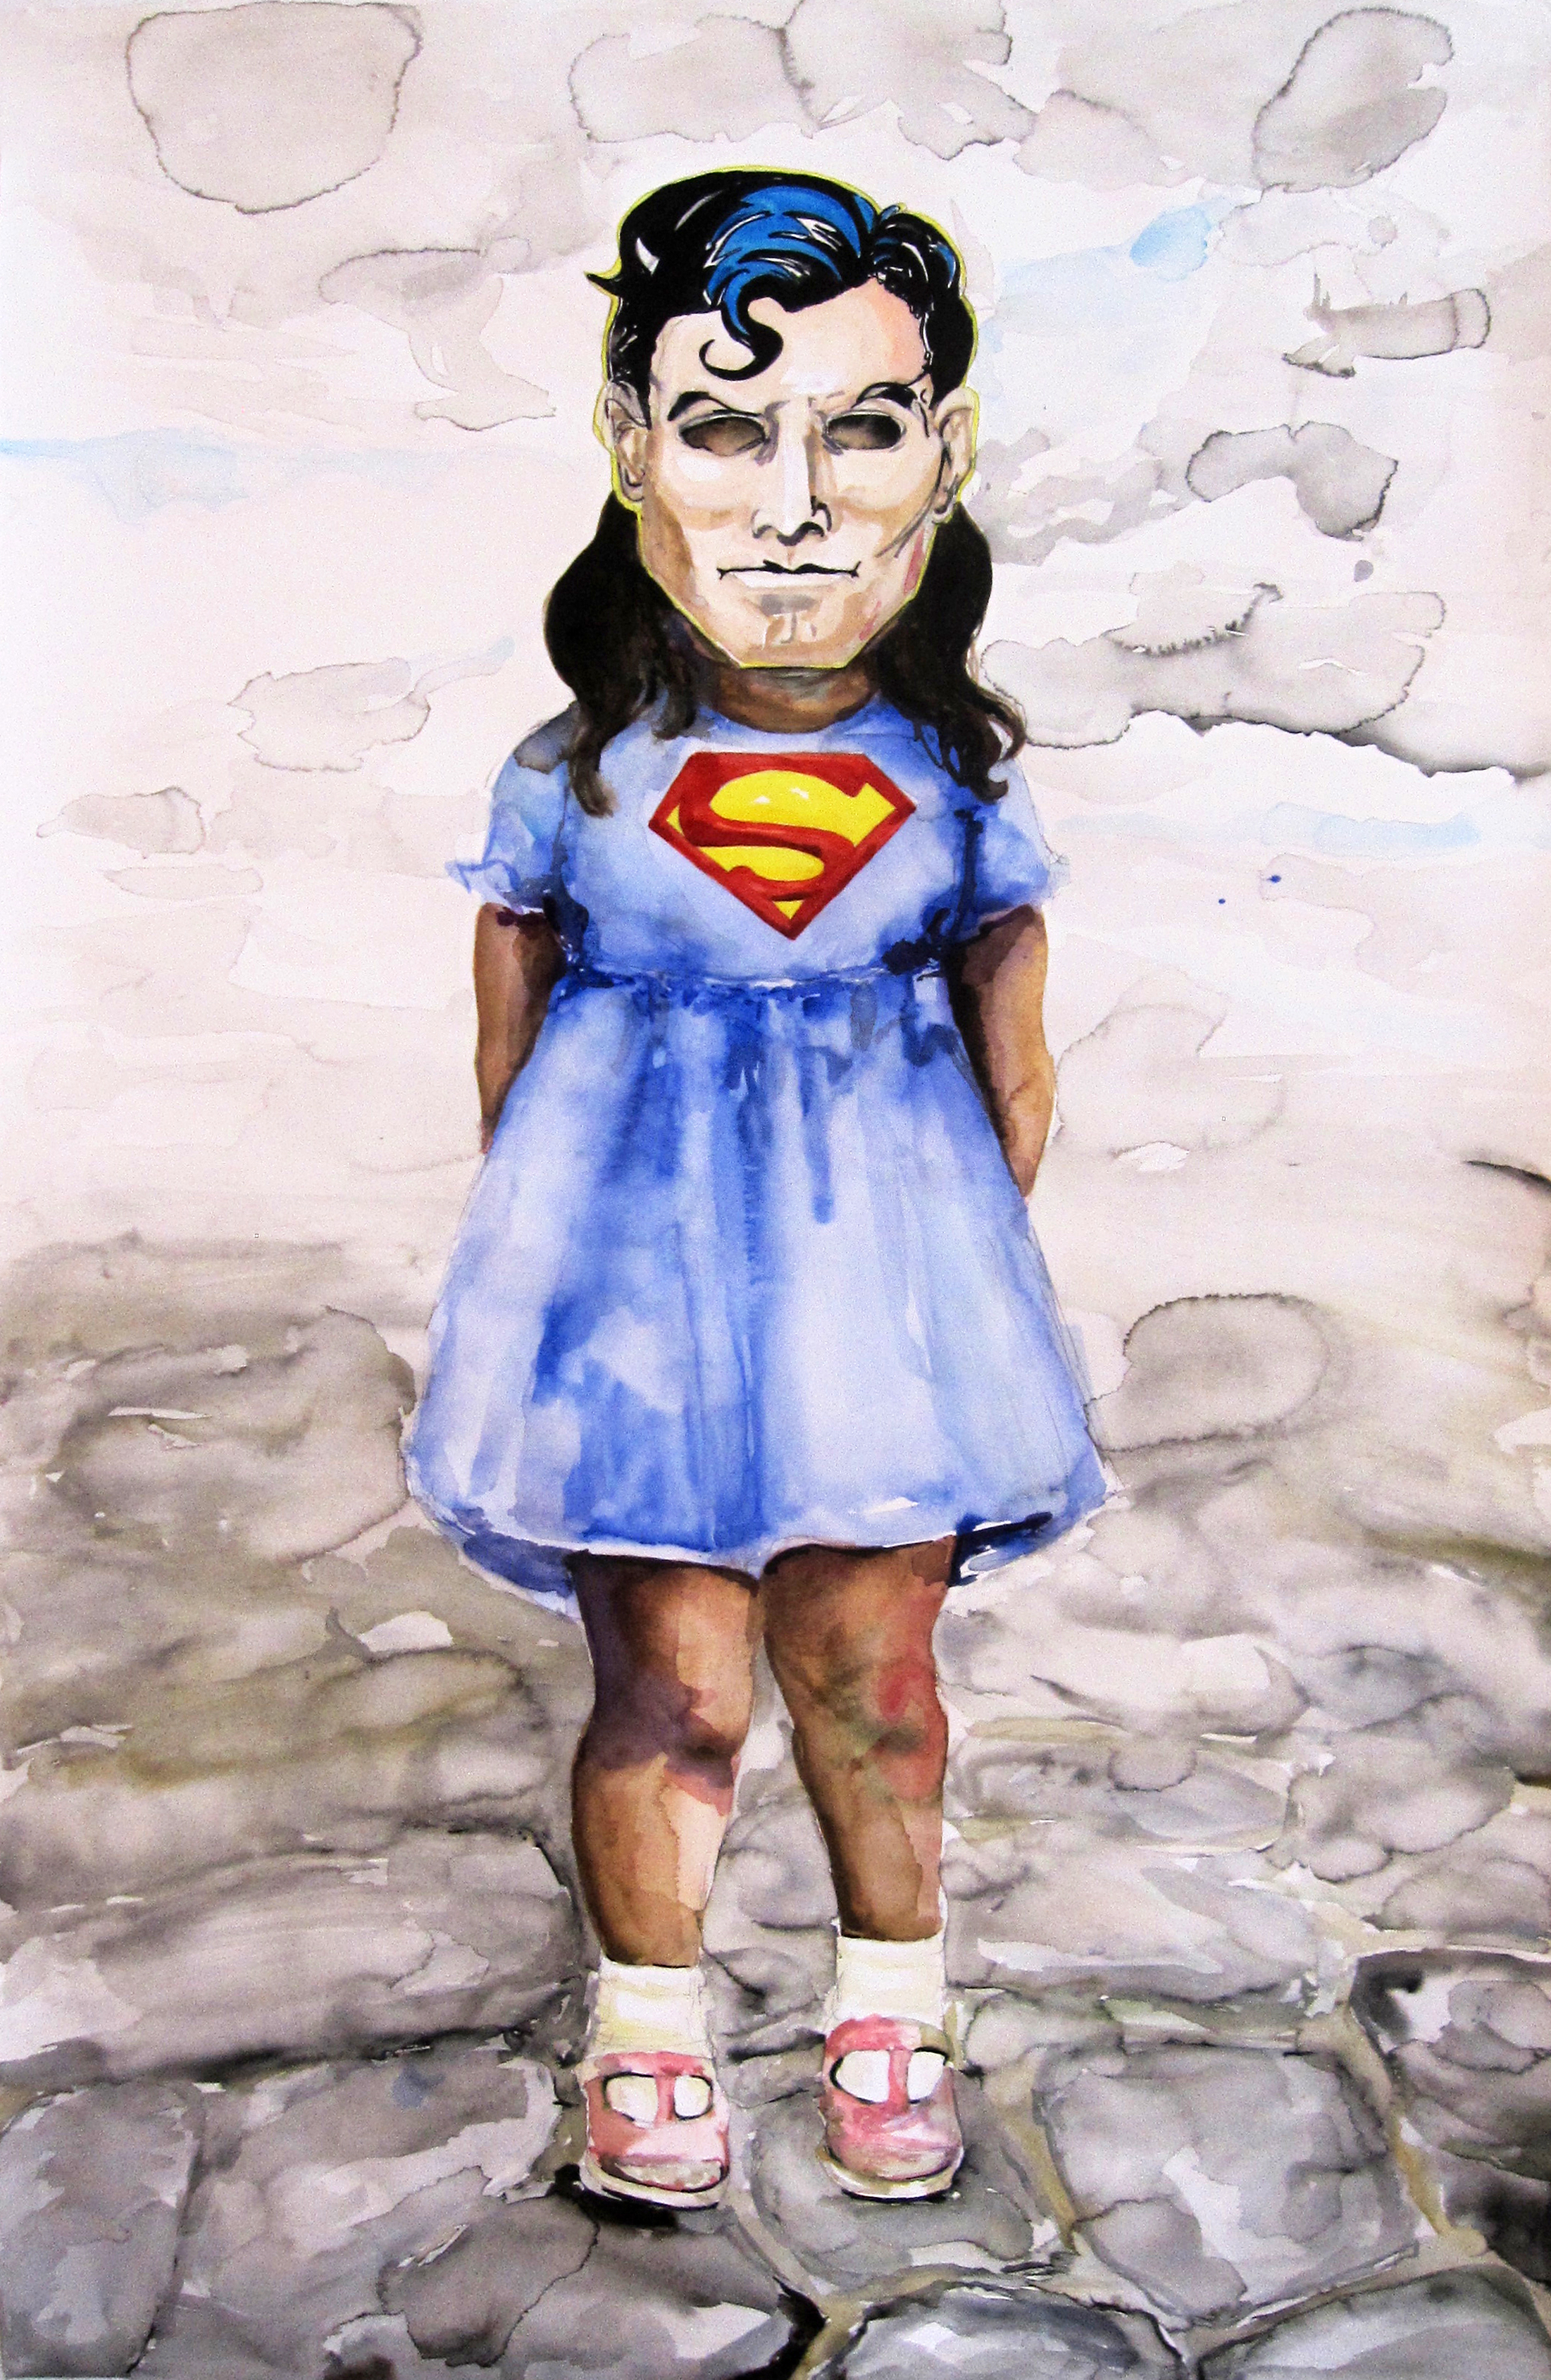 Superman Girl, 2012, Watercolor on paper, 51 3/4 x 32 1/2 in.